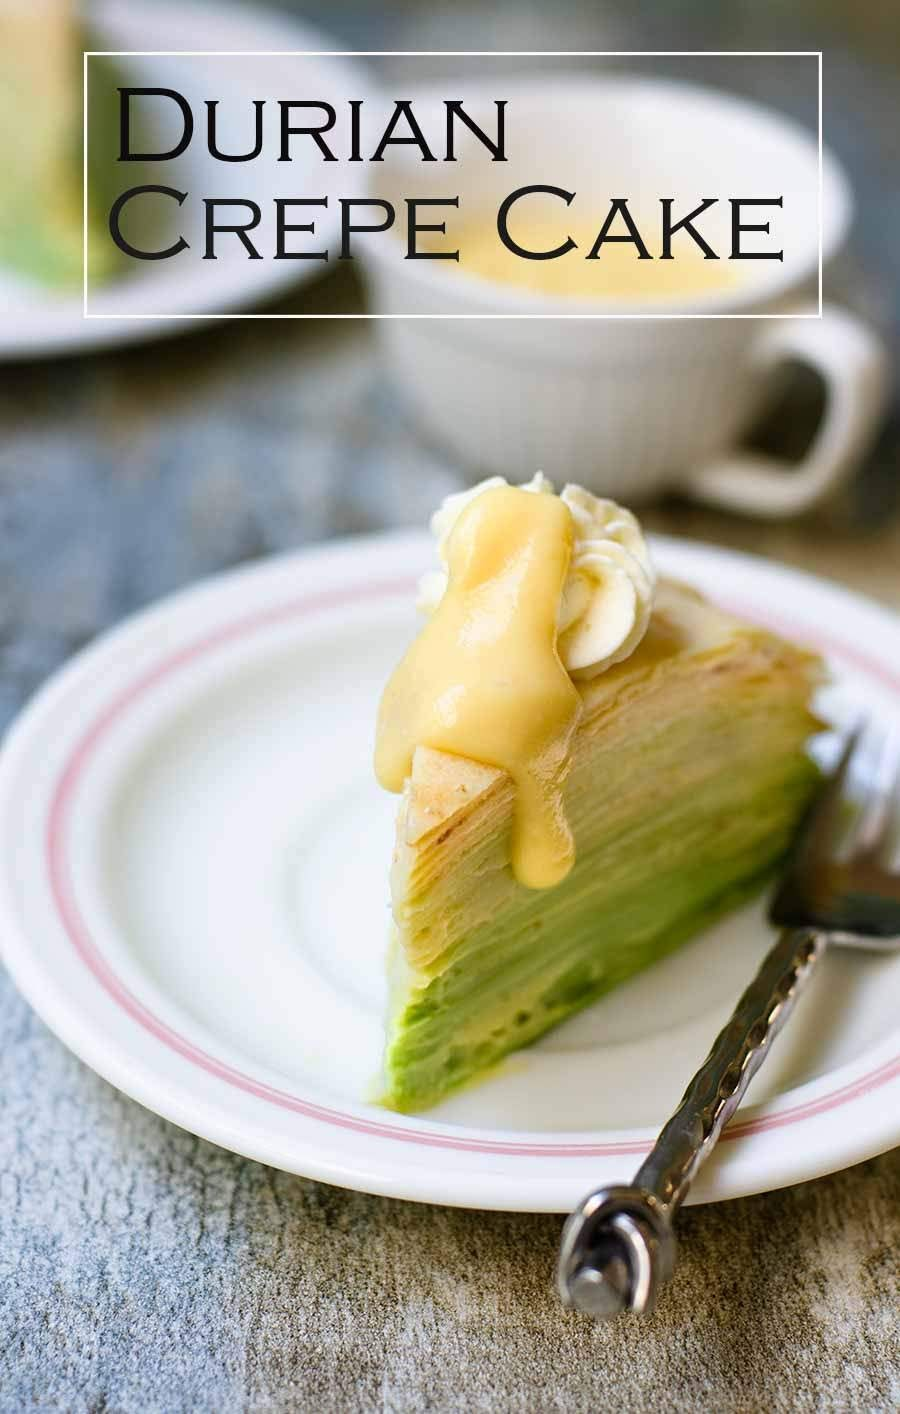 Durian Crepe Cake Recipe is an excellent flavours combining the  French crepe with French creme patisserie and durian, the king of fruit in South-east Asia.